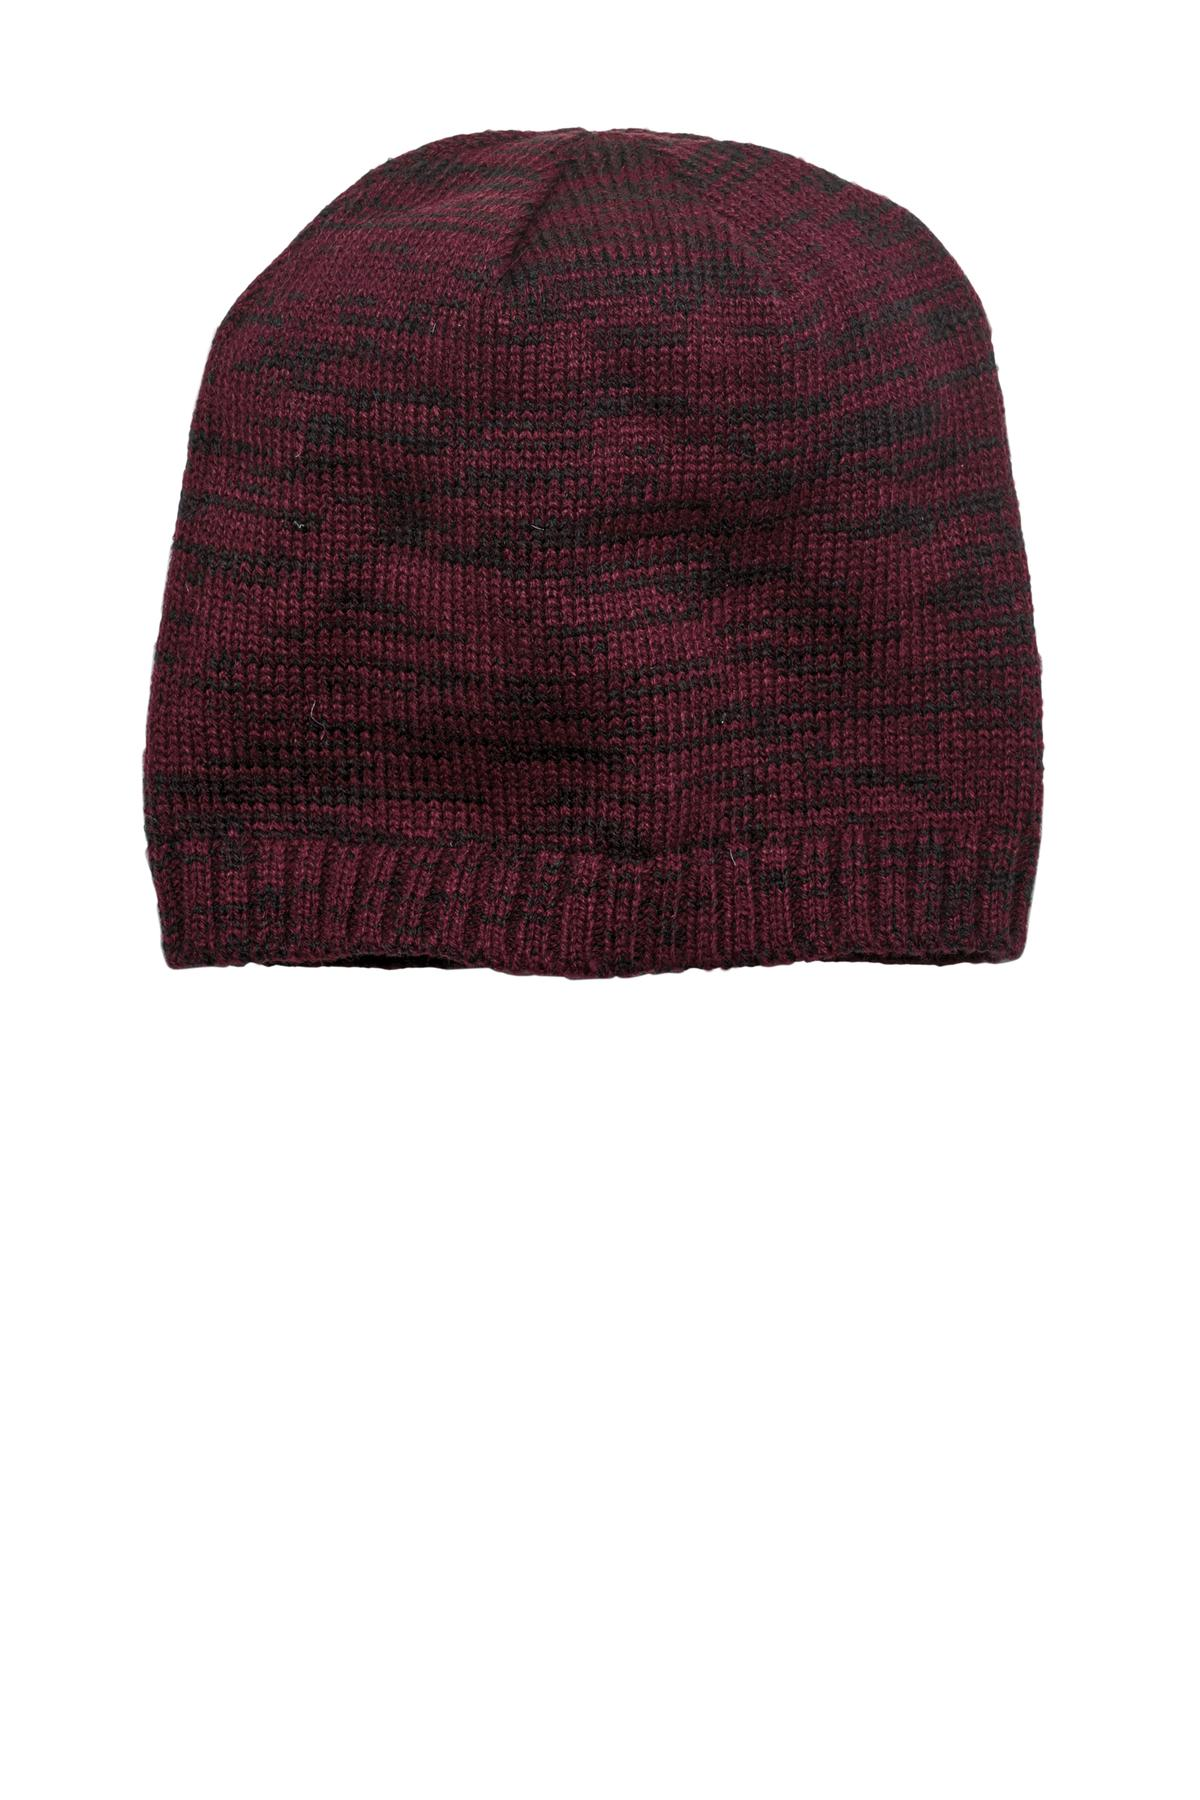 District ®  Spaced-Dyed Beanie DT620 - Maroon/ Black